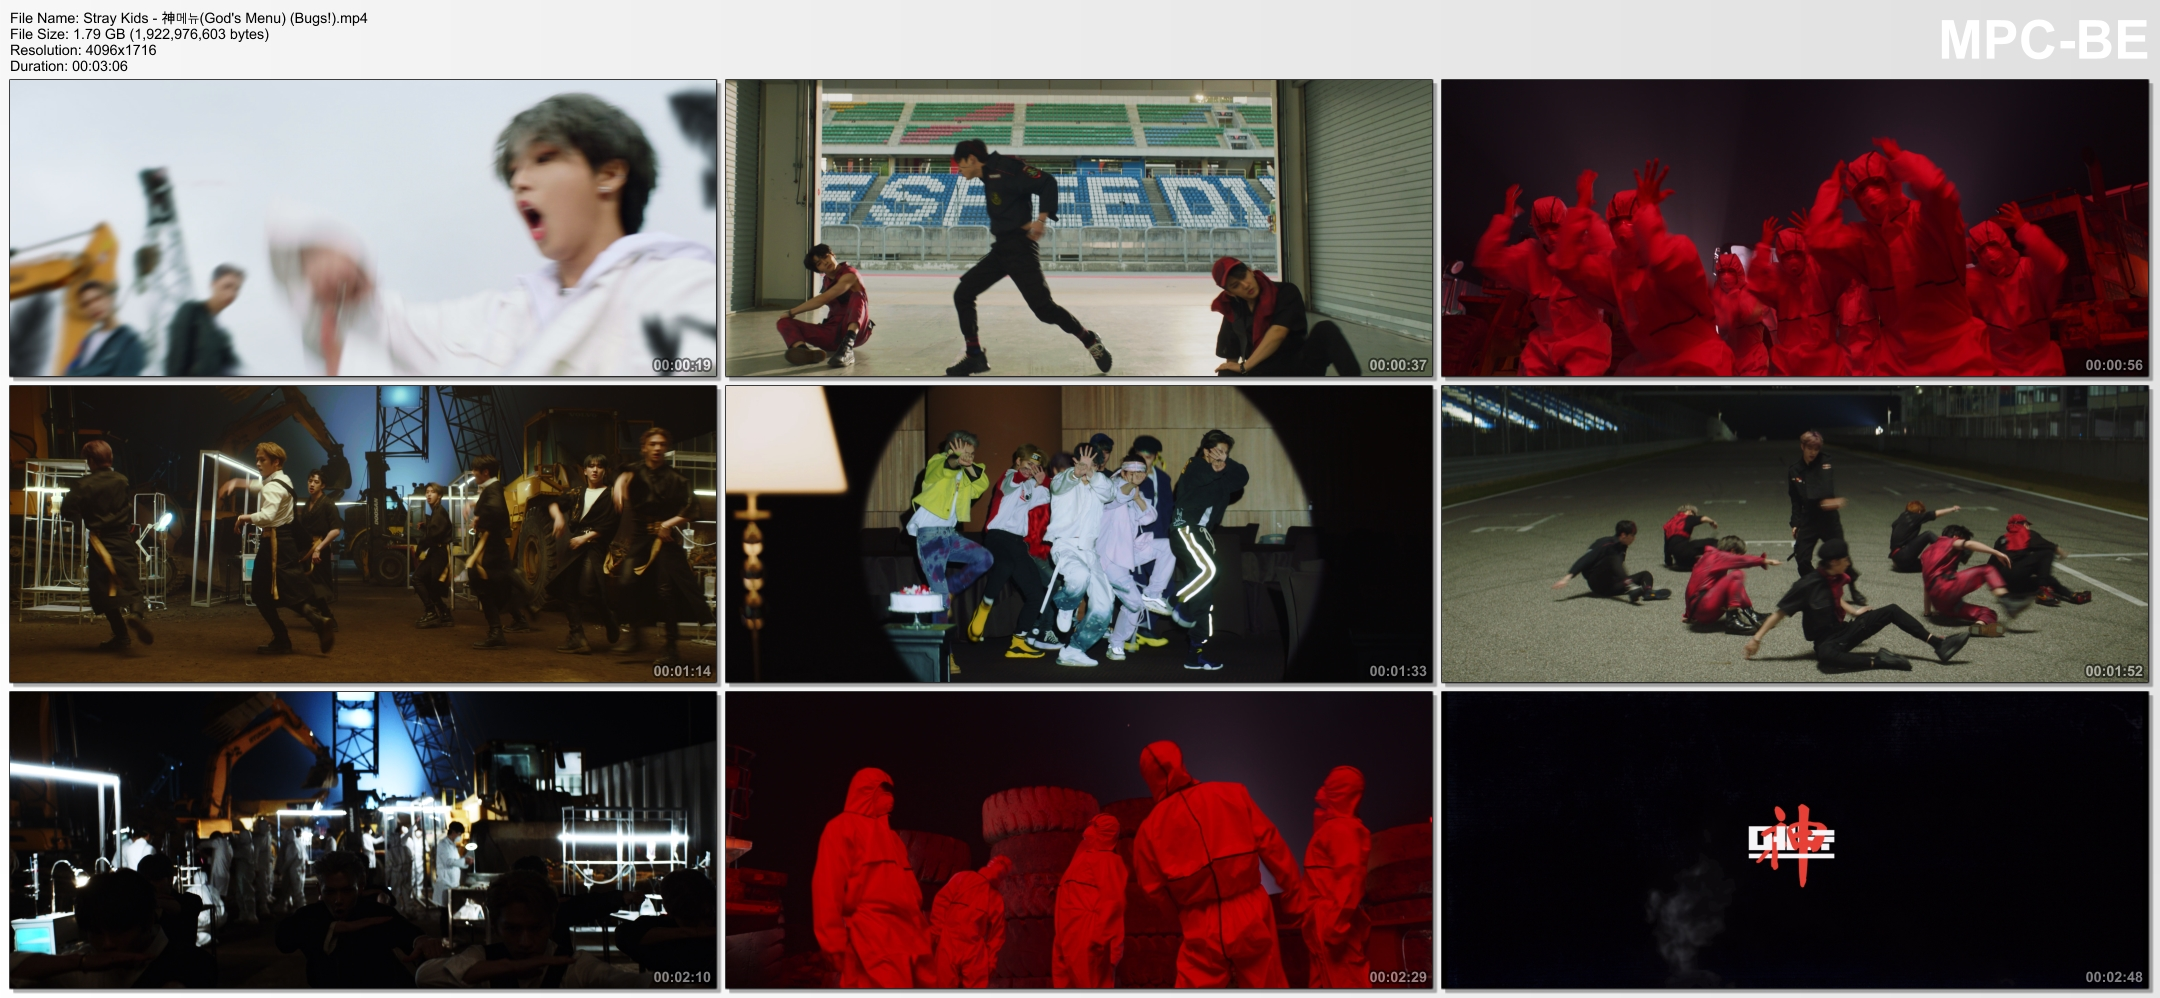 Stray Kids – God's Menu [MP4 2160p / WEB / Bugs] [2020.06.17]